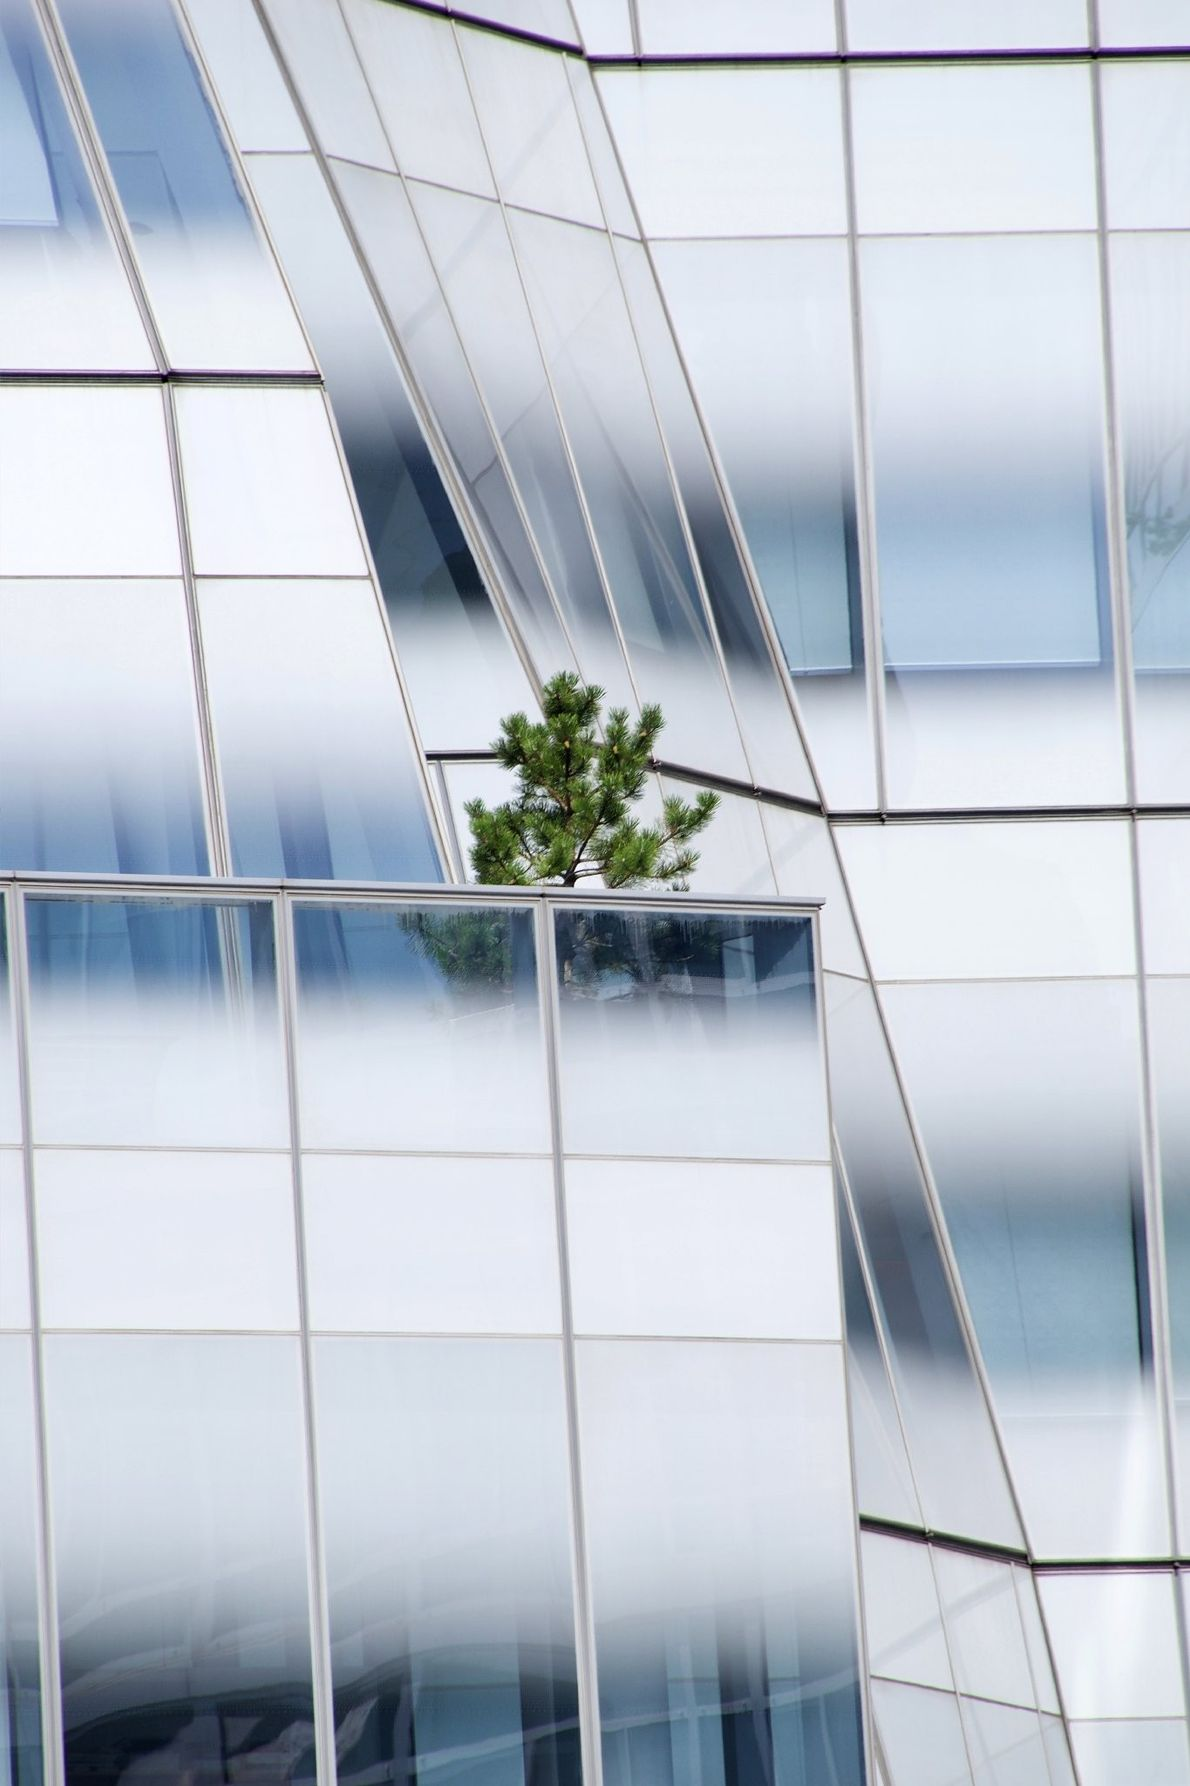 Your Shot photographer Carolina G. Paris made this image of a tree on a balcony in ...